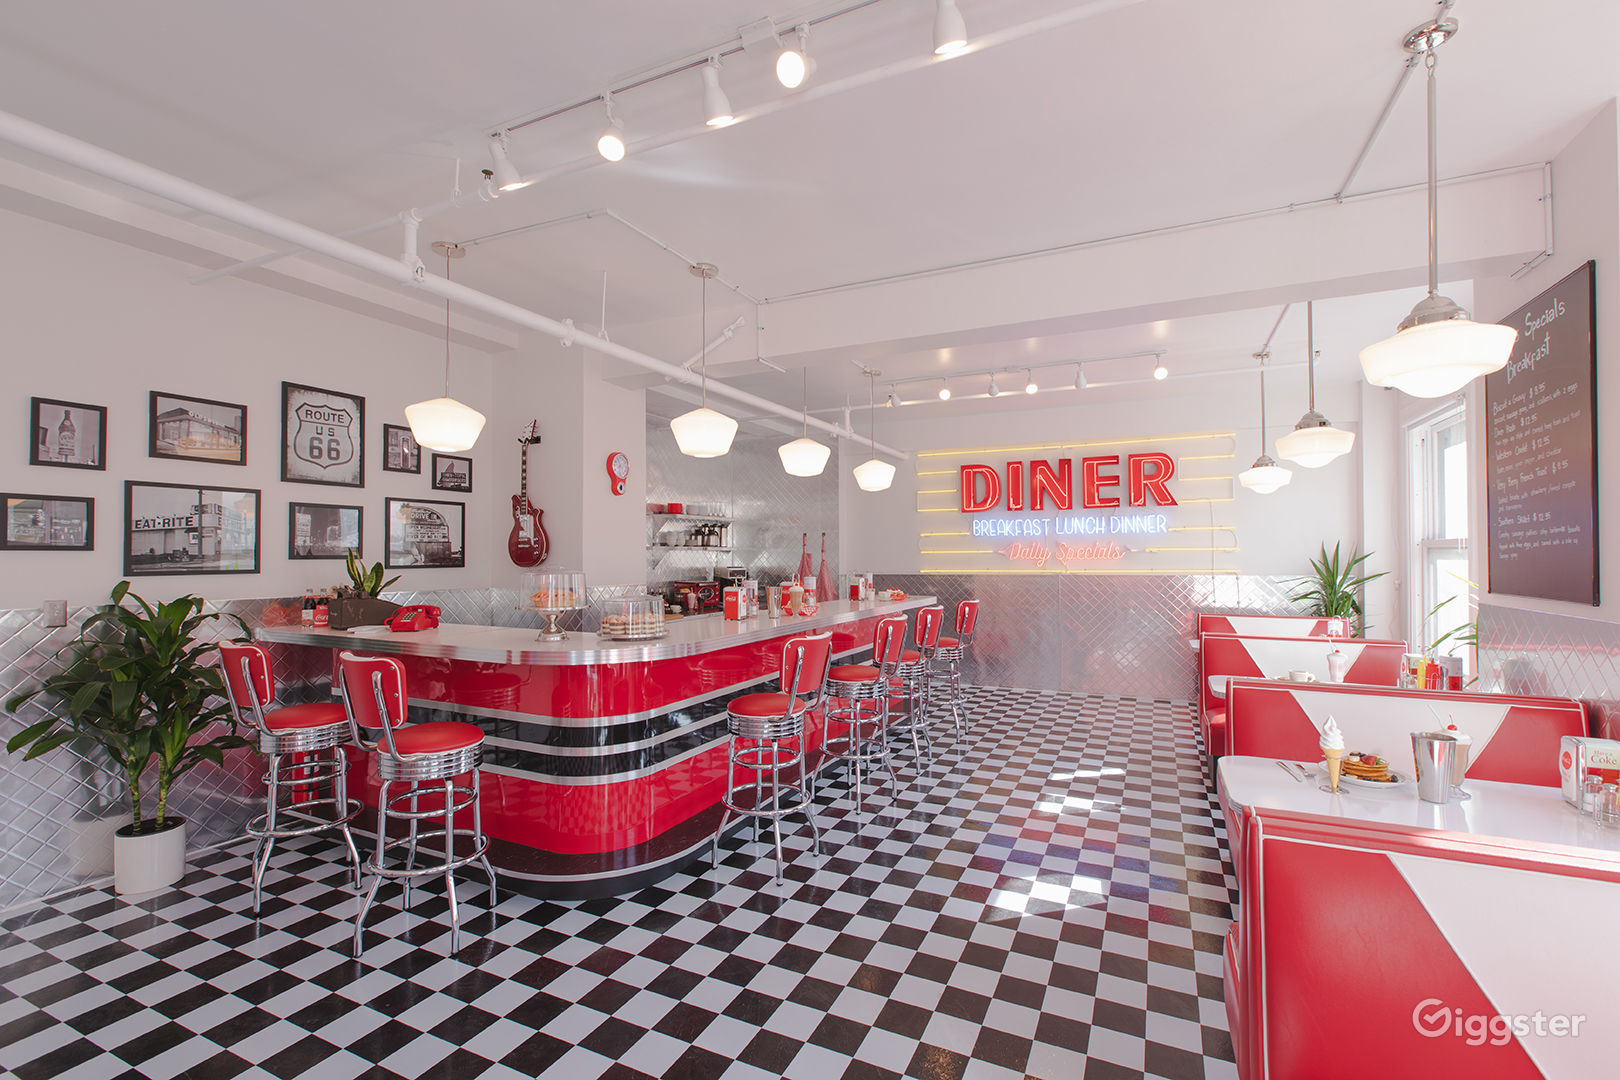 Dtla Sun Drenched 50s Retro Diner Restaurant Cafe Rent This Location On Giggster